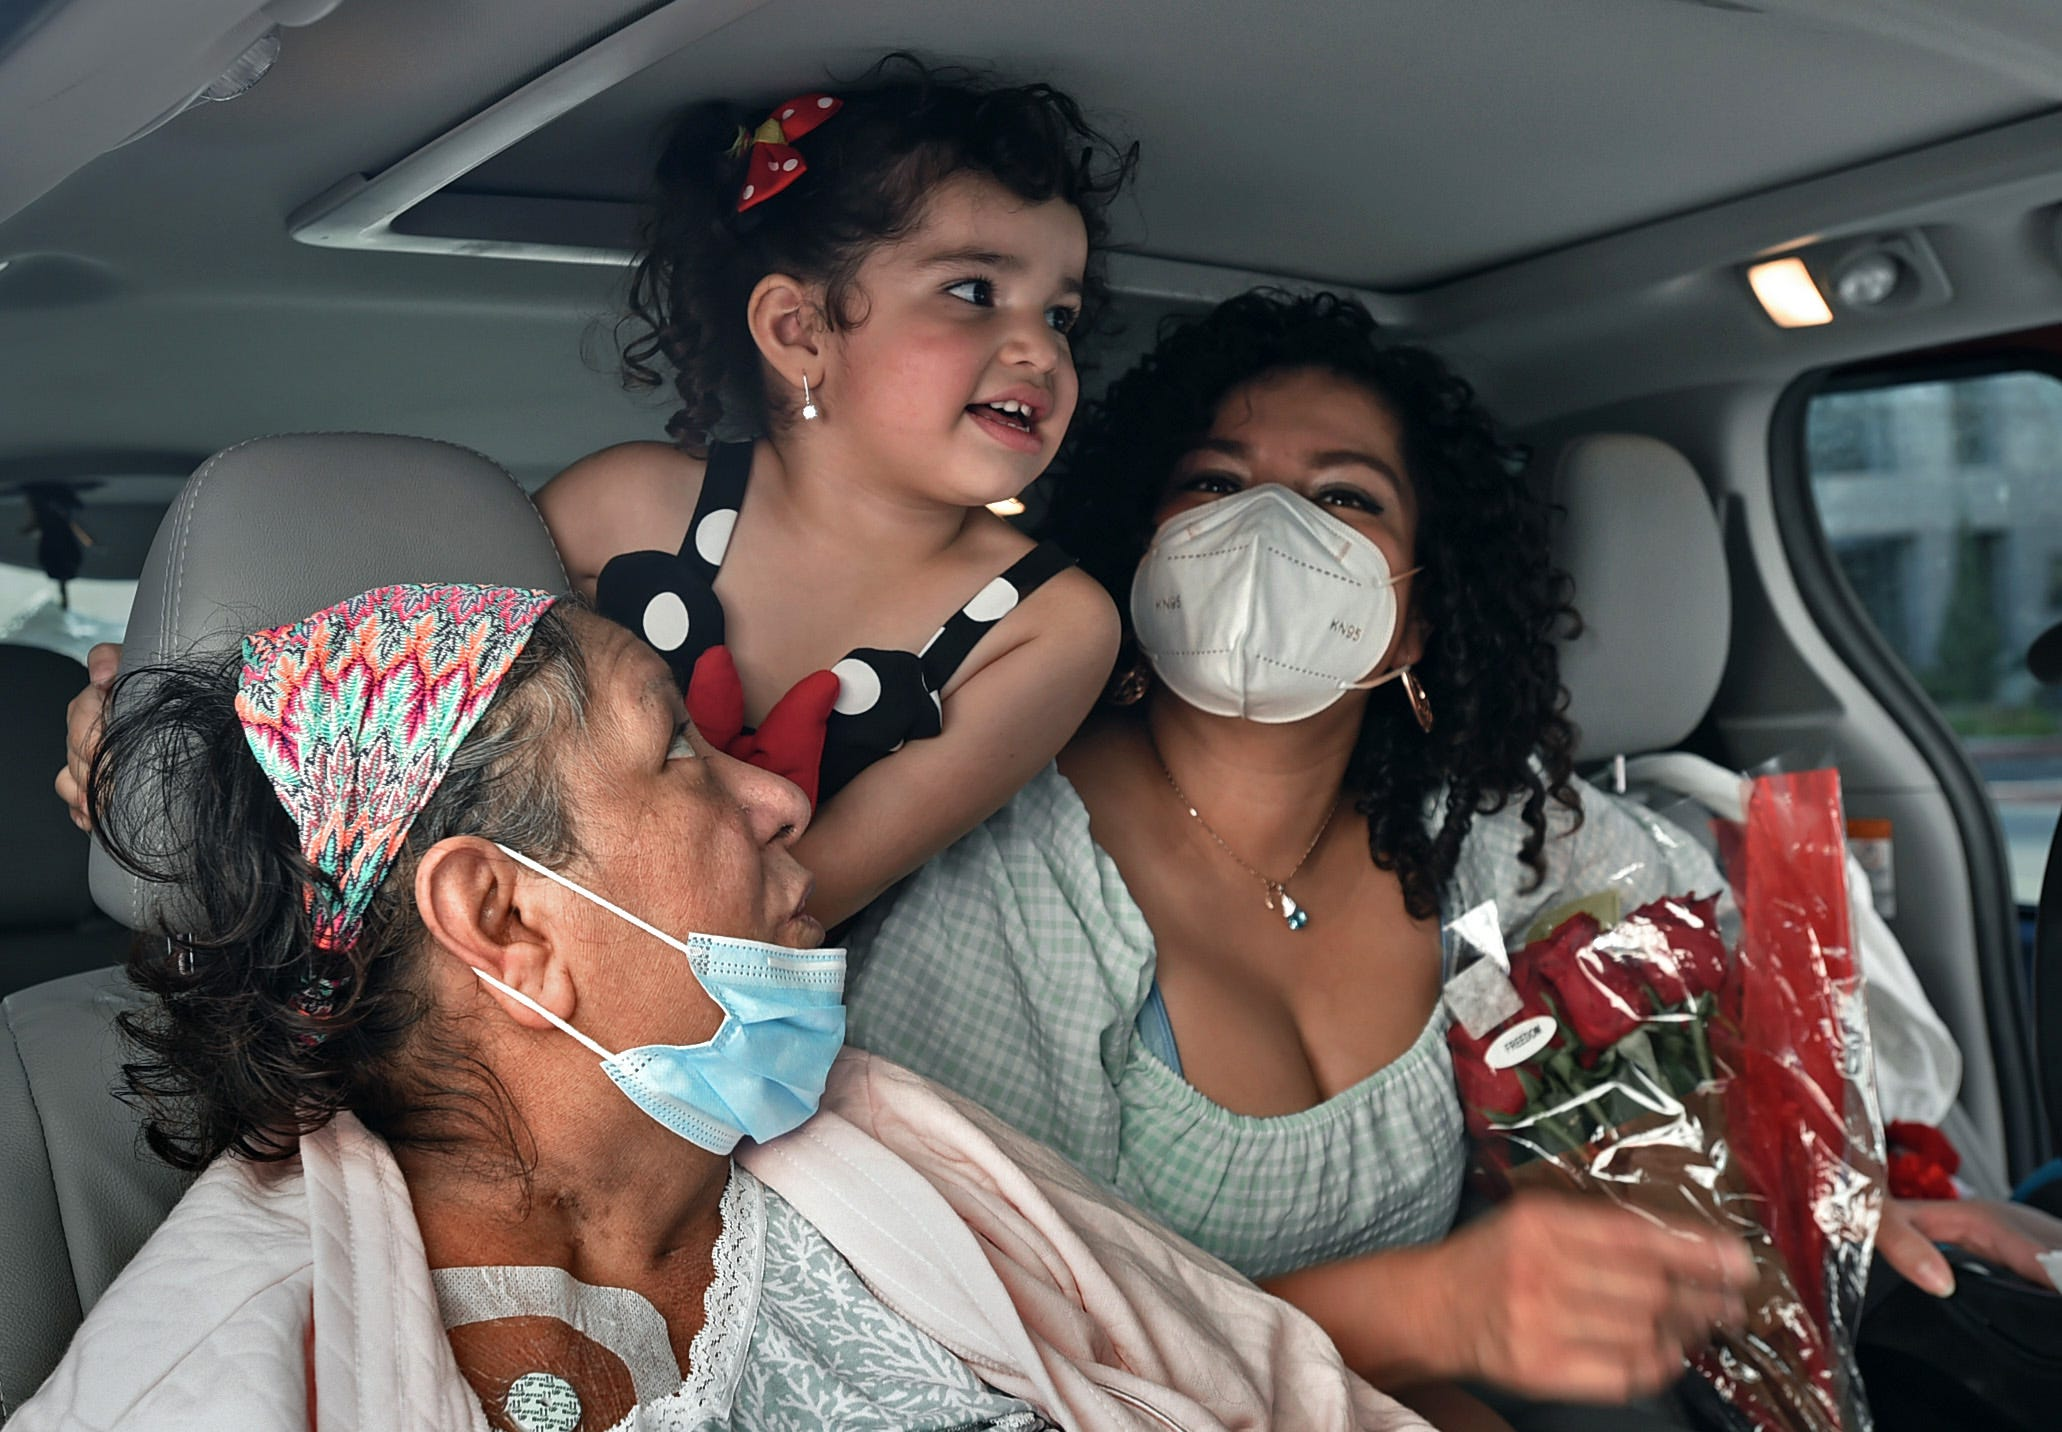 Patricia Villaseca sits in the family car with granddaughter Gadi Camacho, 4, and daughter Cyndi Camacho after being discharged from Saint Mary's Regional Medical Center where she was hospitalized 5 months after contracting COVID-19 in April 2020. Villaseca, 60, survived COVID-19 despite having an underlying condition. Her daughter Cyndi Camacho, right, also contracted COVID-19 while being pregnant.